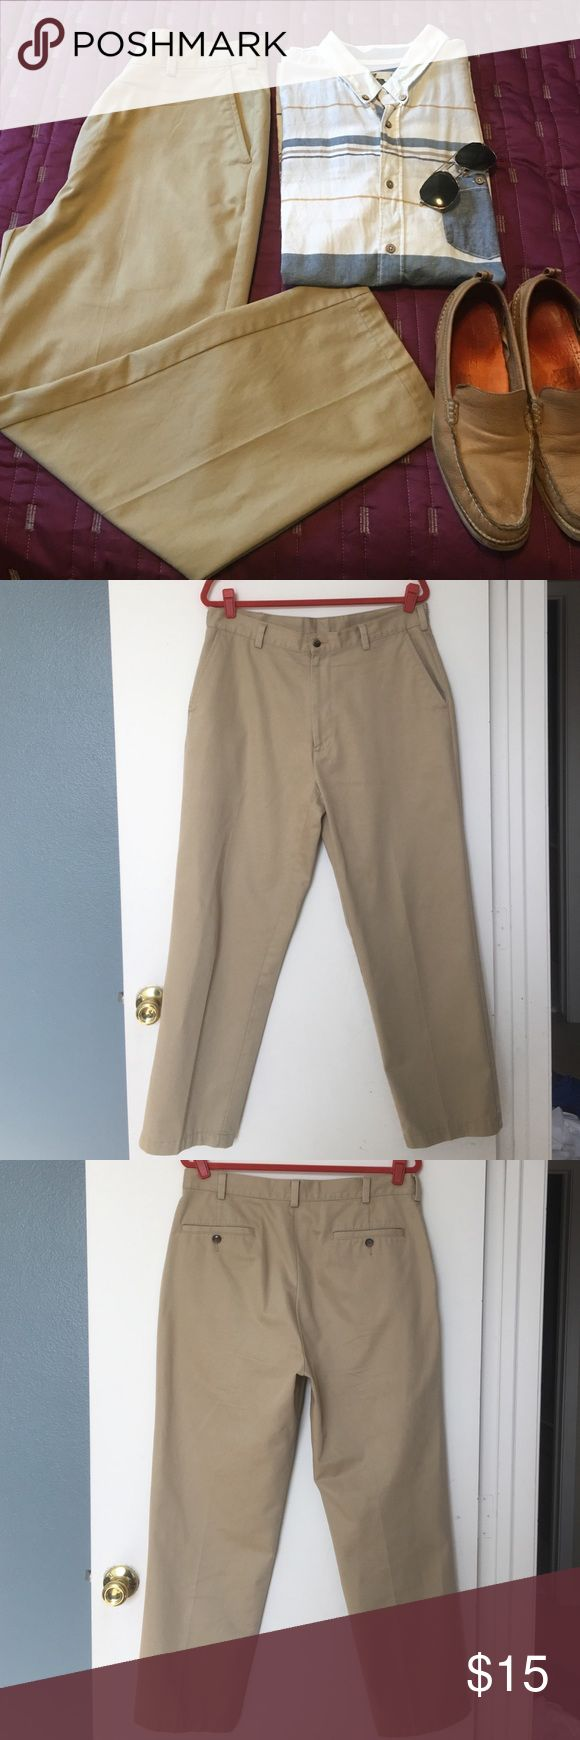 "Jos. A. Bank Men's Khaki Pants 35W X 30L Gently worn men's tan khaki pants. Nice heavy fabric in 100% cotton. Very versatile. Great for work or play or if you are looking to be ""Jake from State Farm"" this Halloween. These are in great used condition. Flat waist 17"" and inseam about 29.5"". Jos A. Bank Pants"